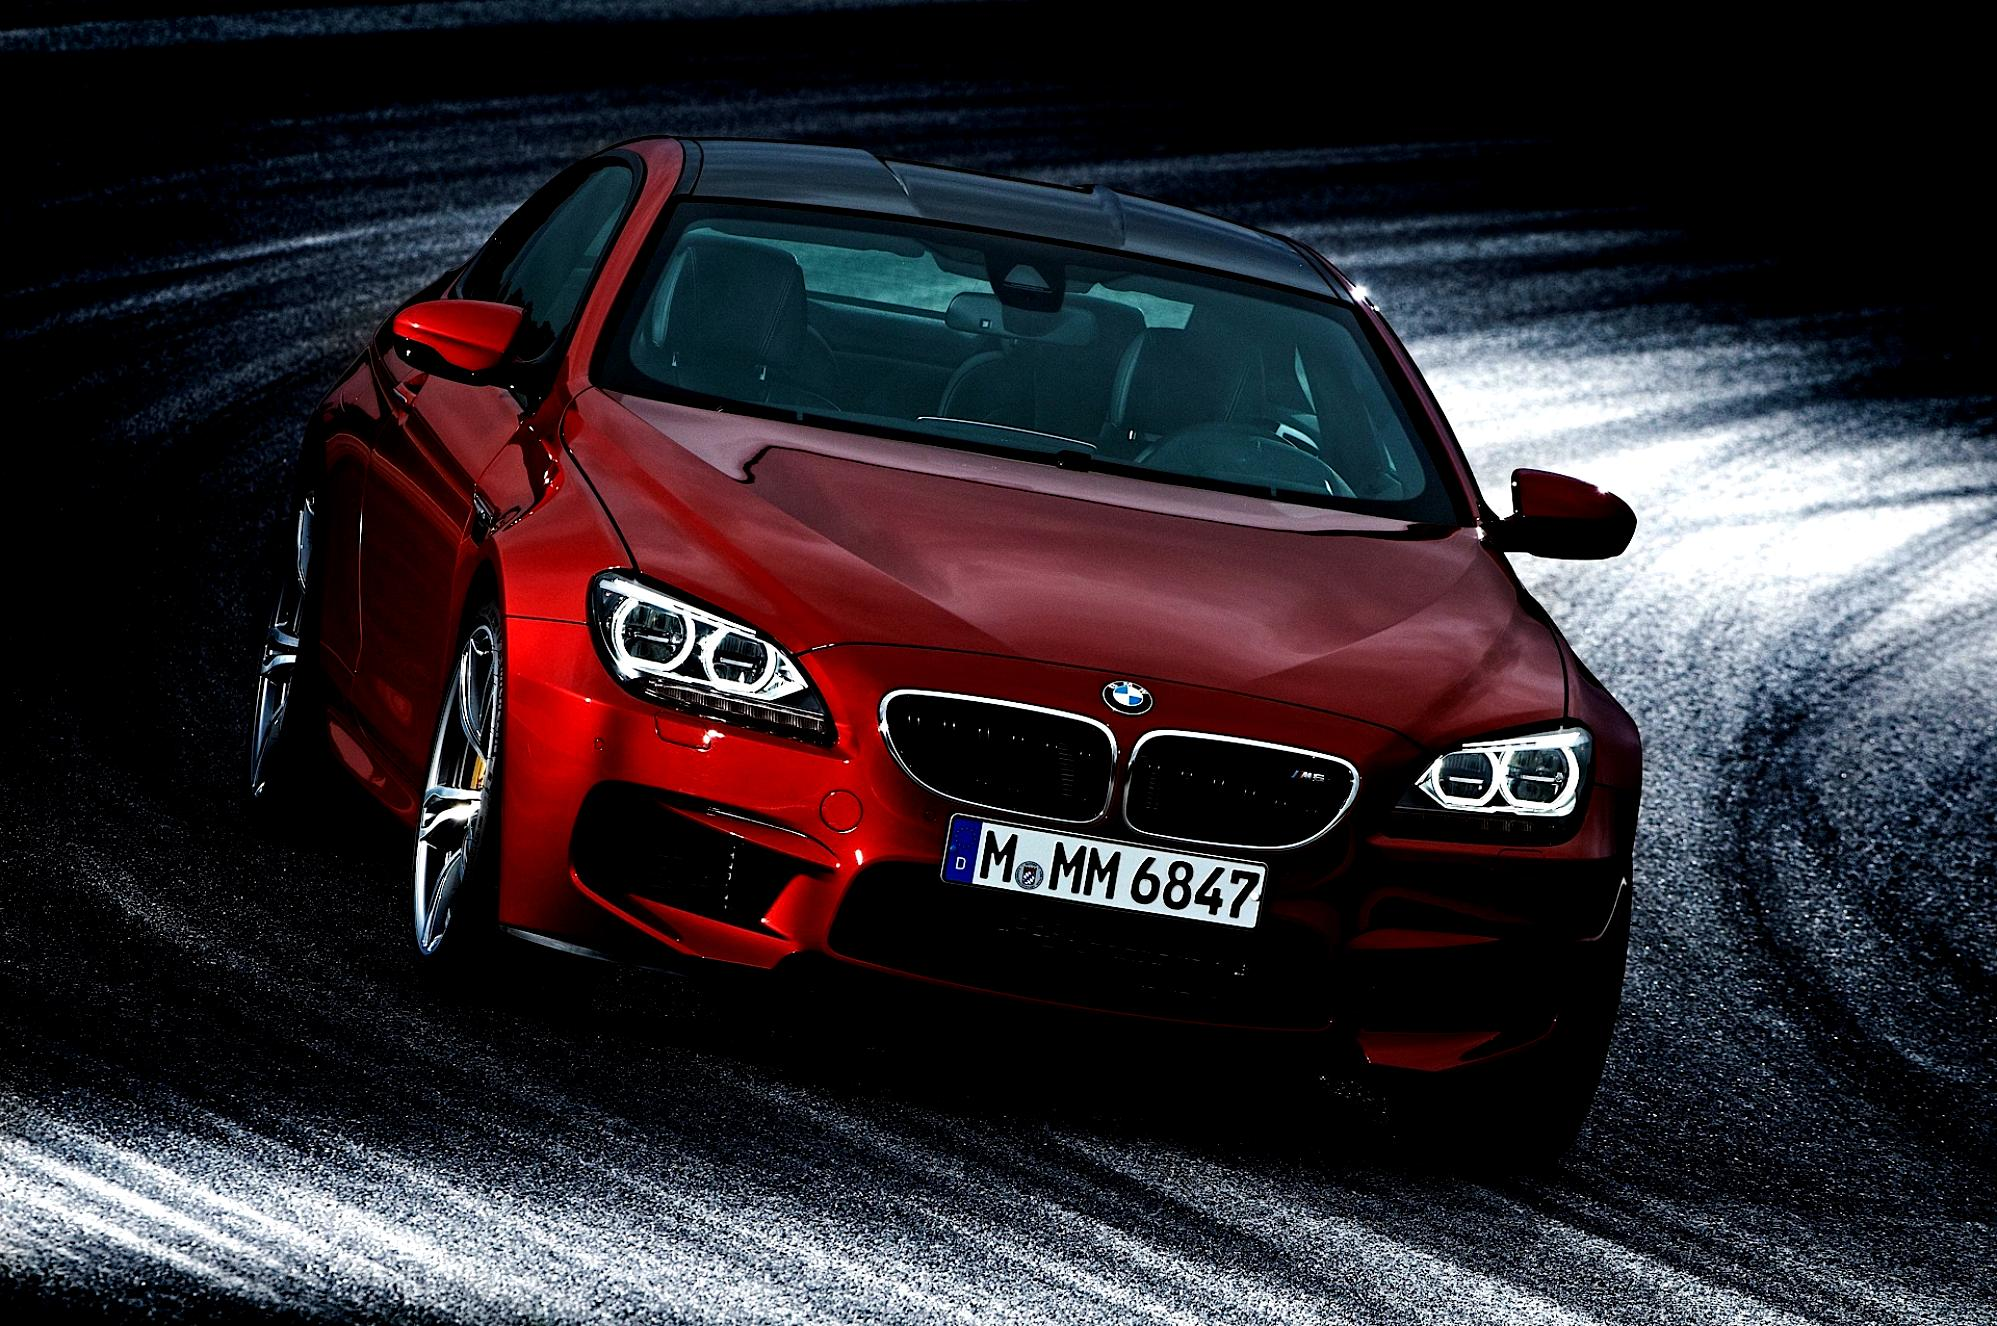 BMW M6 Coupe F13 2012 #100